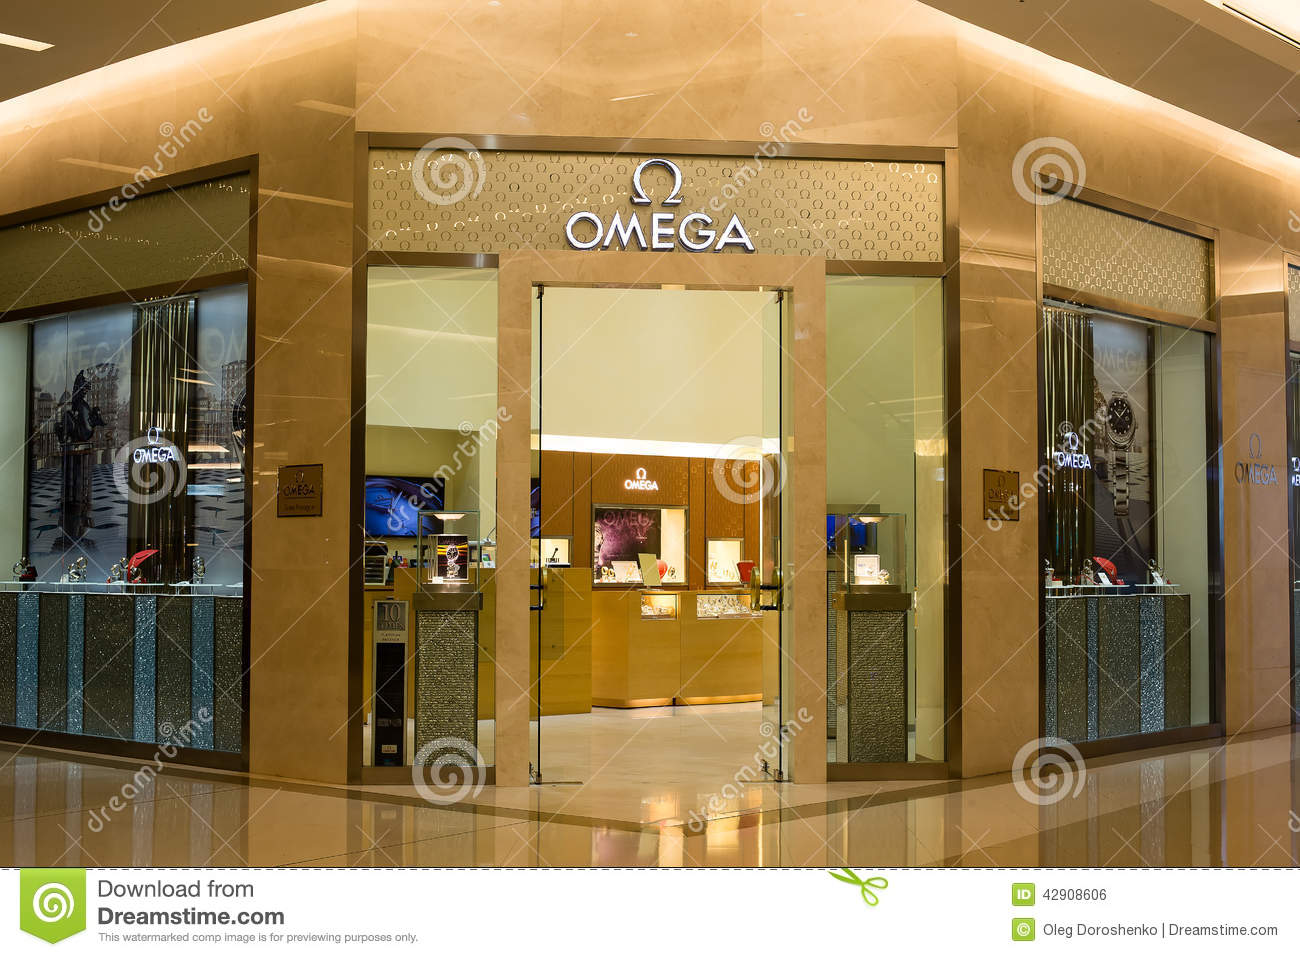 Omega Store In Siam Paragon Mall In Bangkok Thailand